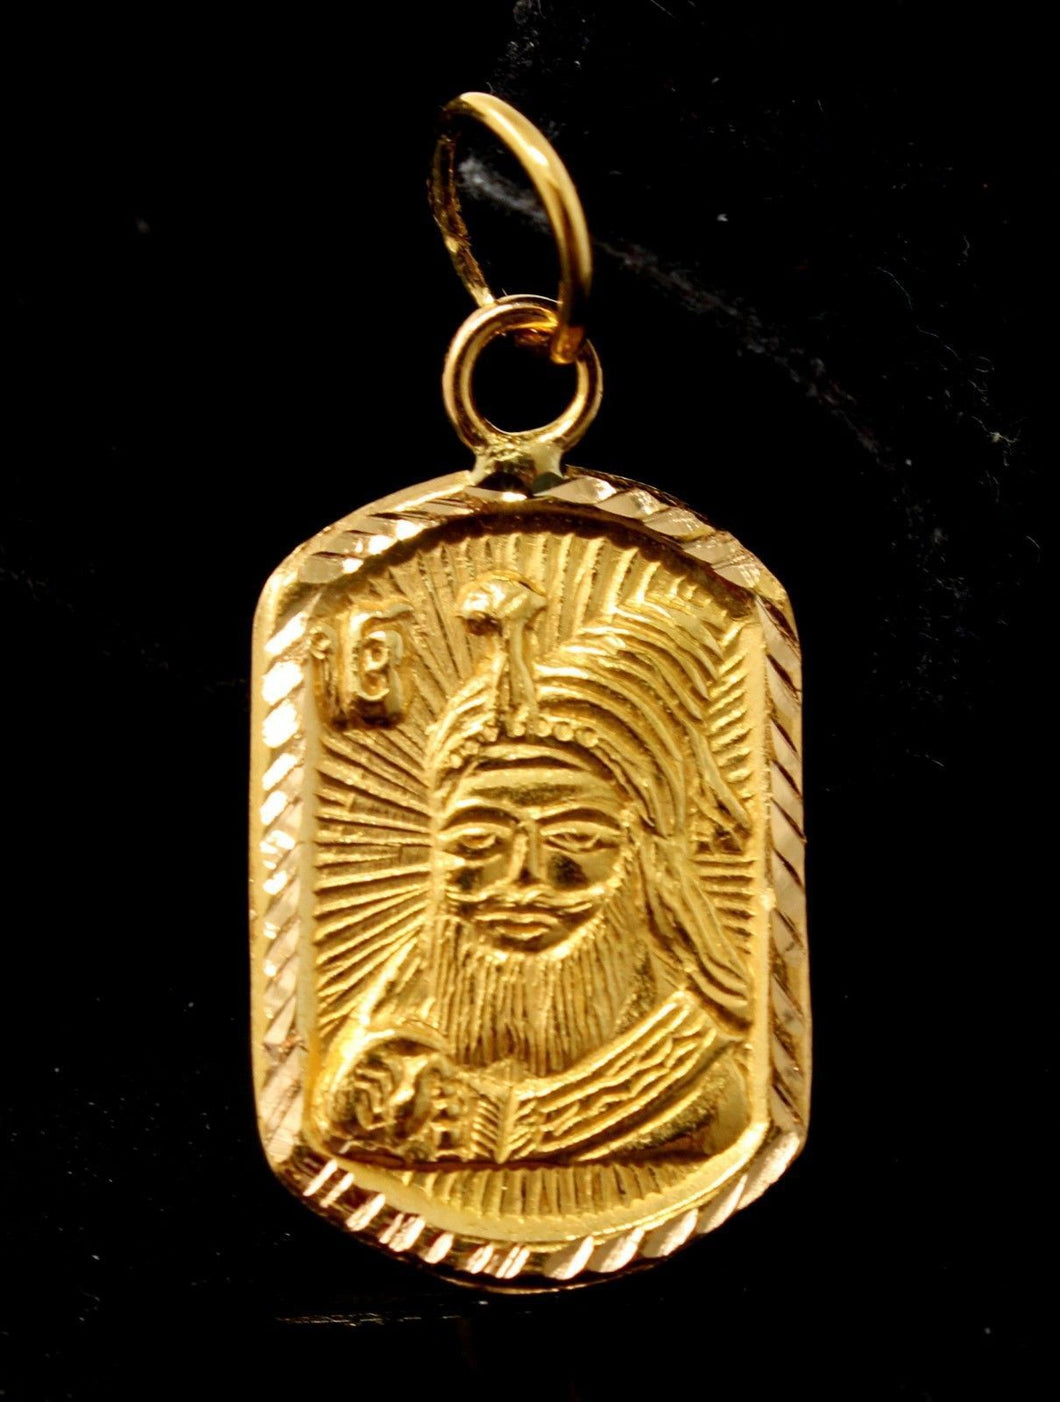 22k 22ct Solid Gold HEART SIKHI RELIGIOUS GURU NANAK JI PENDANT Design p1029 | Royal Dubai Jewellers